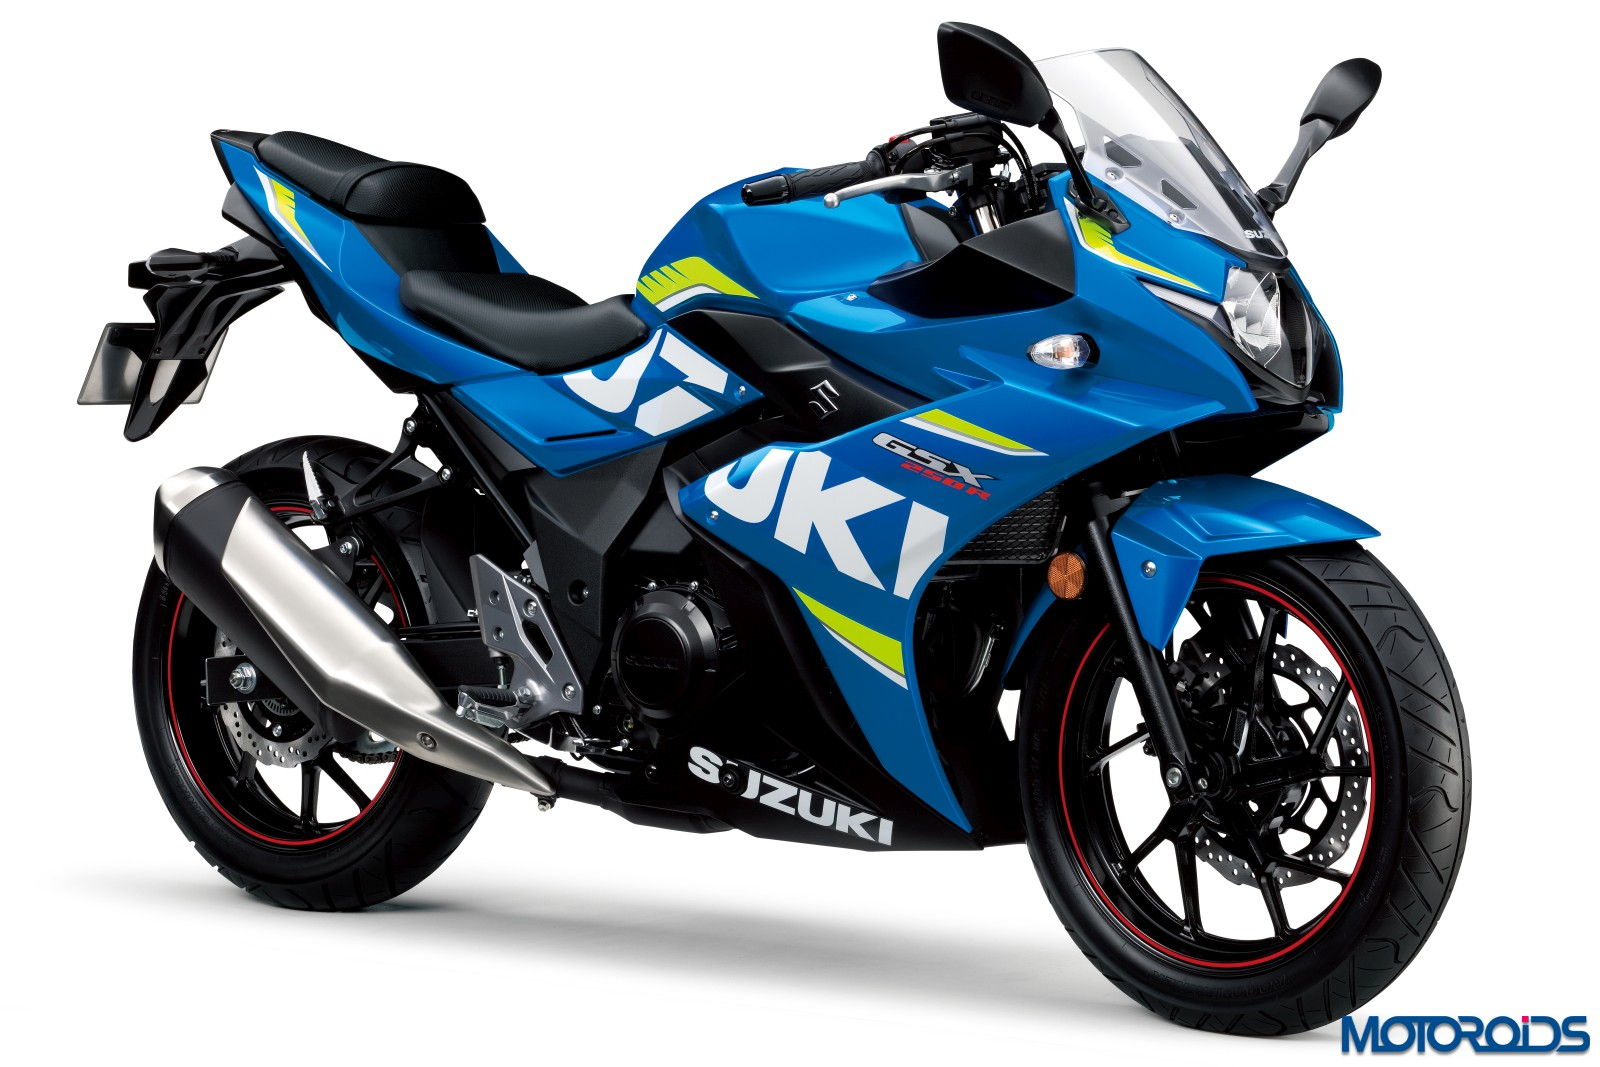 Suzuki Gsx Rprice In India